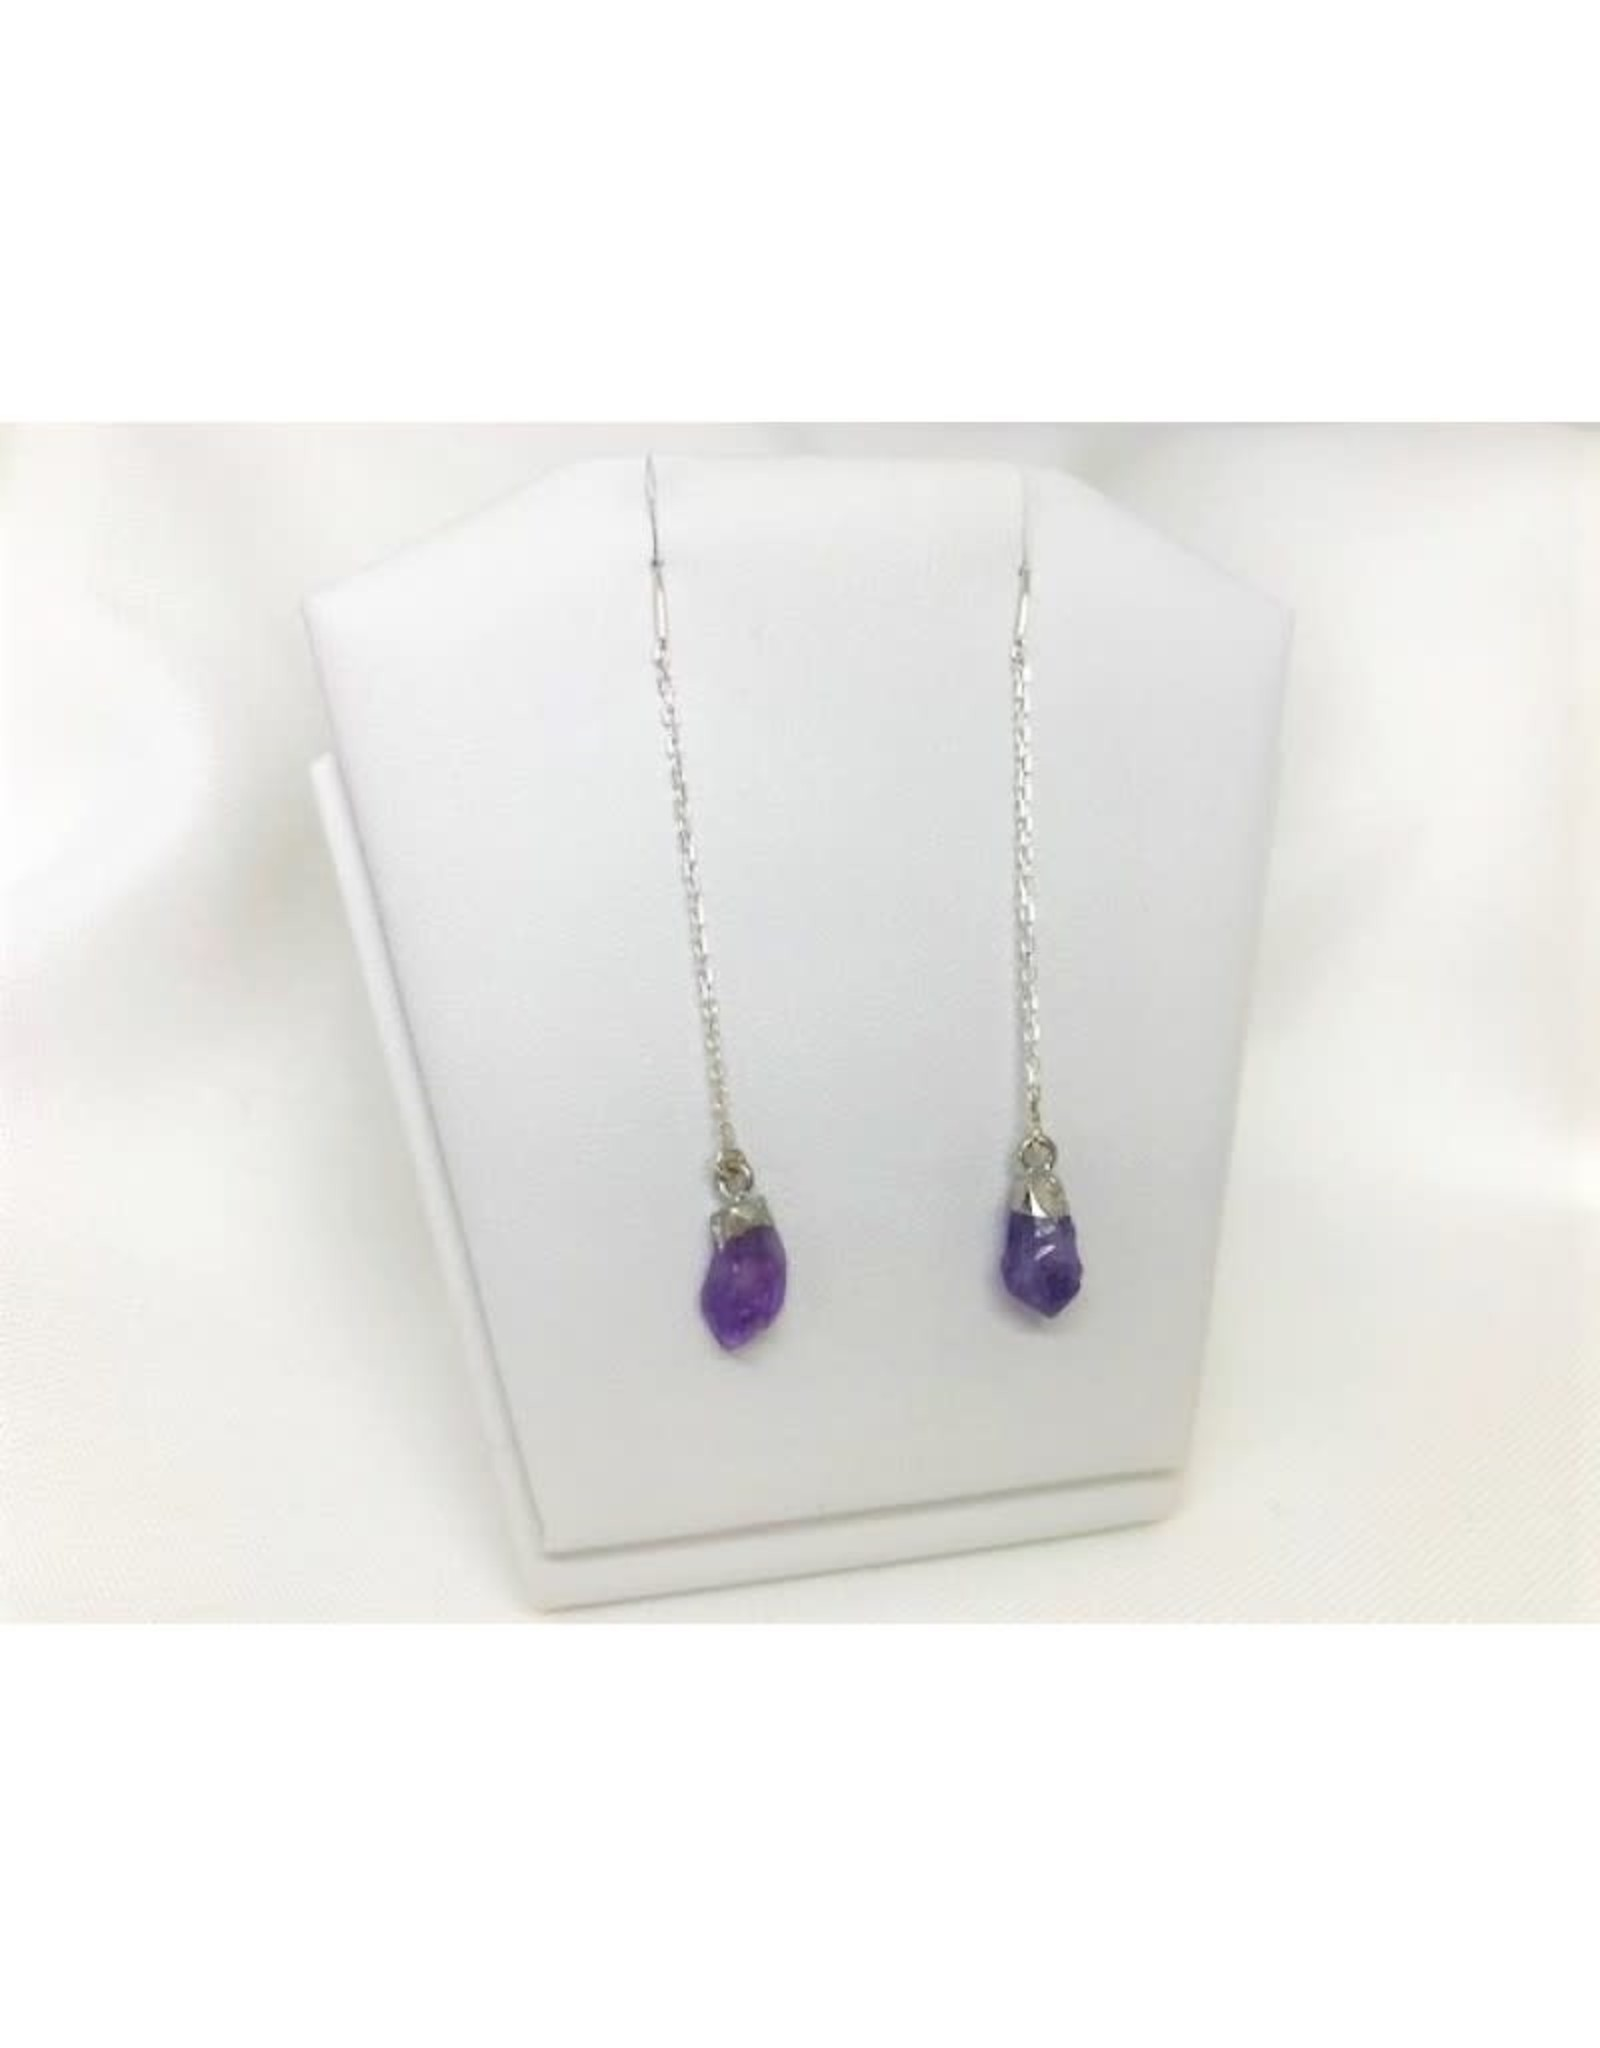 Thread Through Earrings - Amethyst/Silver